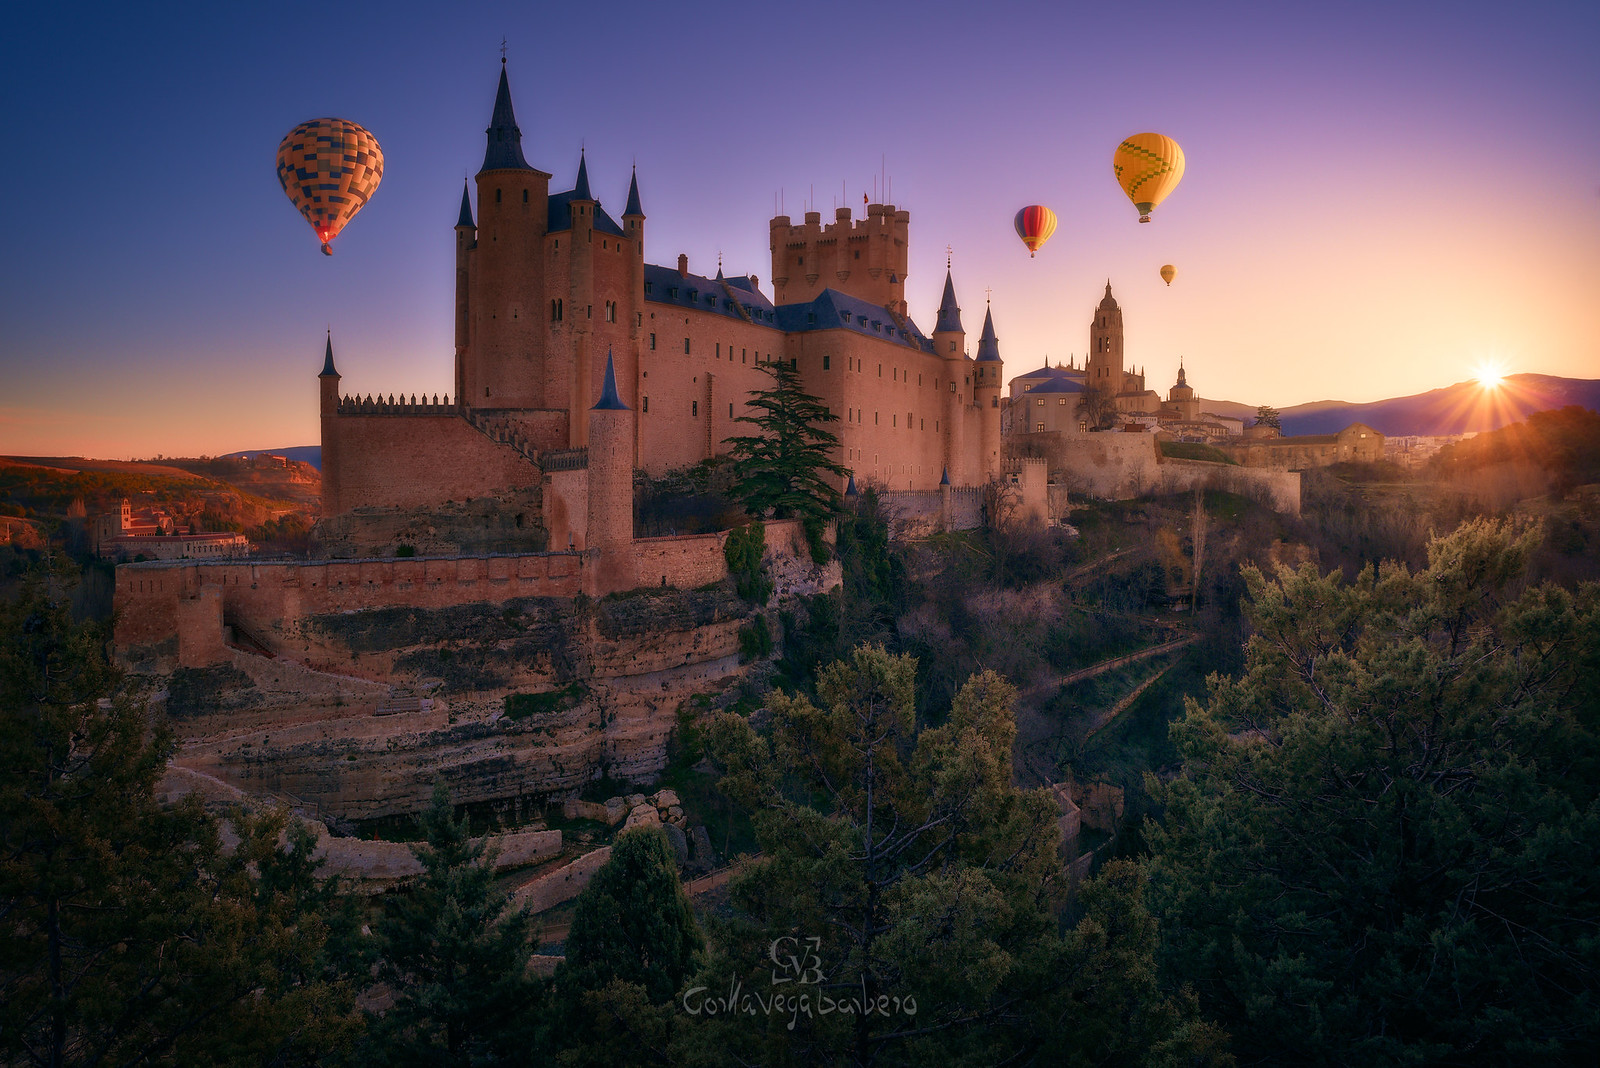 The Magic Castle (Alcázar de Segovia) | ©Gorka Vega Creative